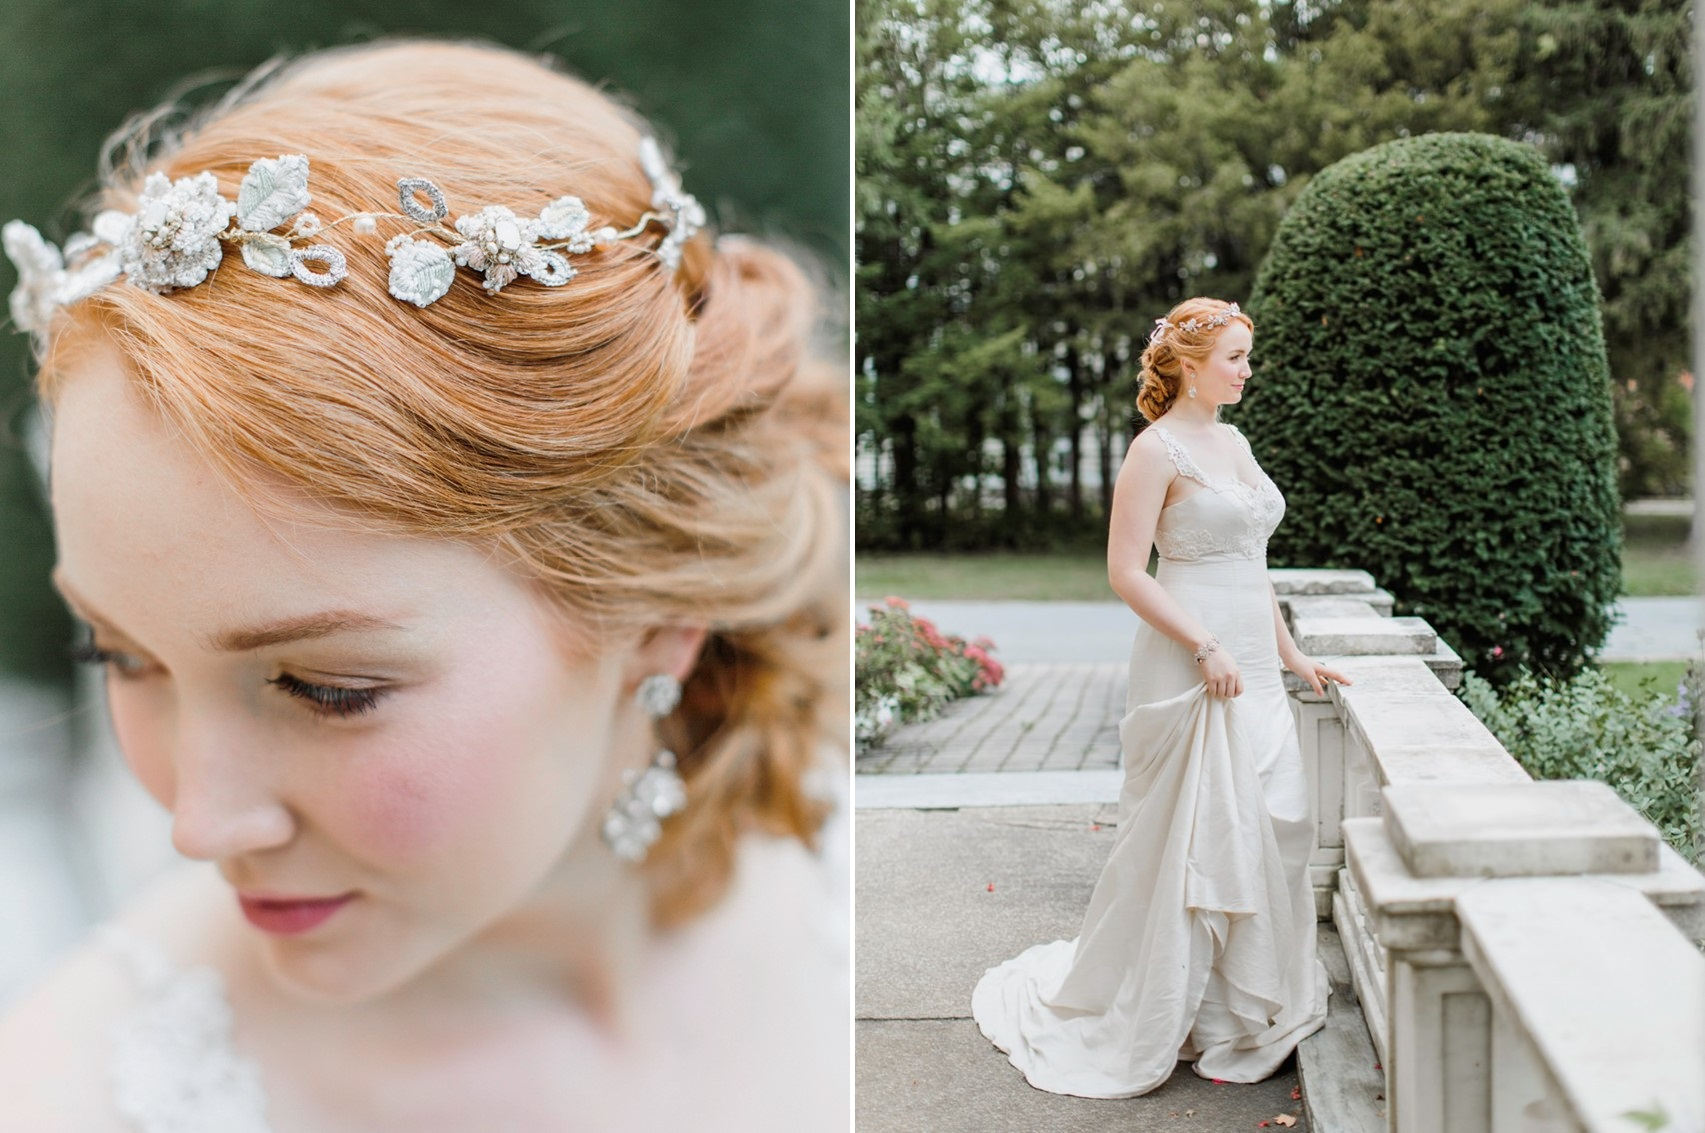 Delicate Floral Bridal Crown from Edera